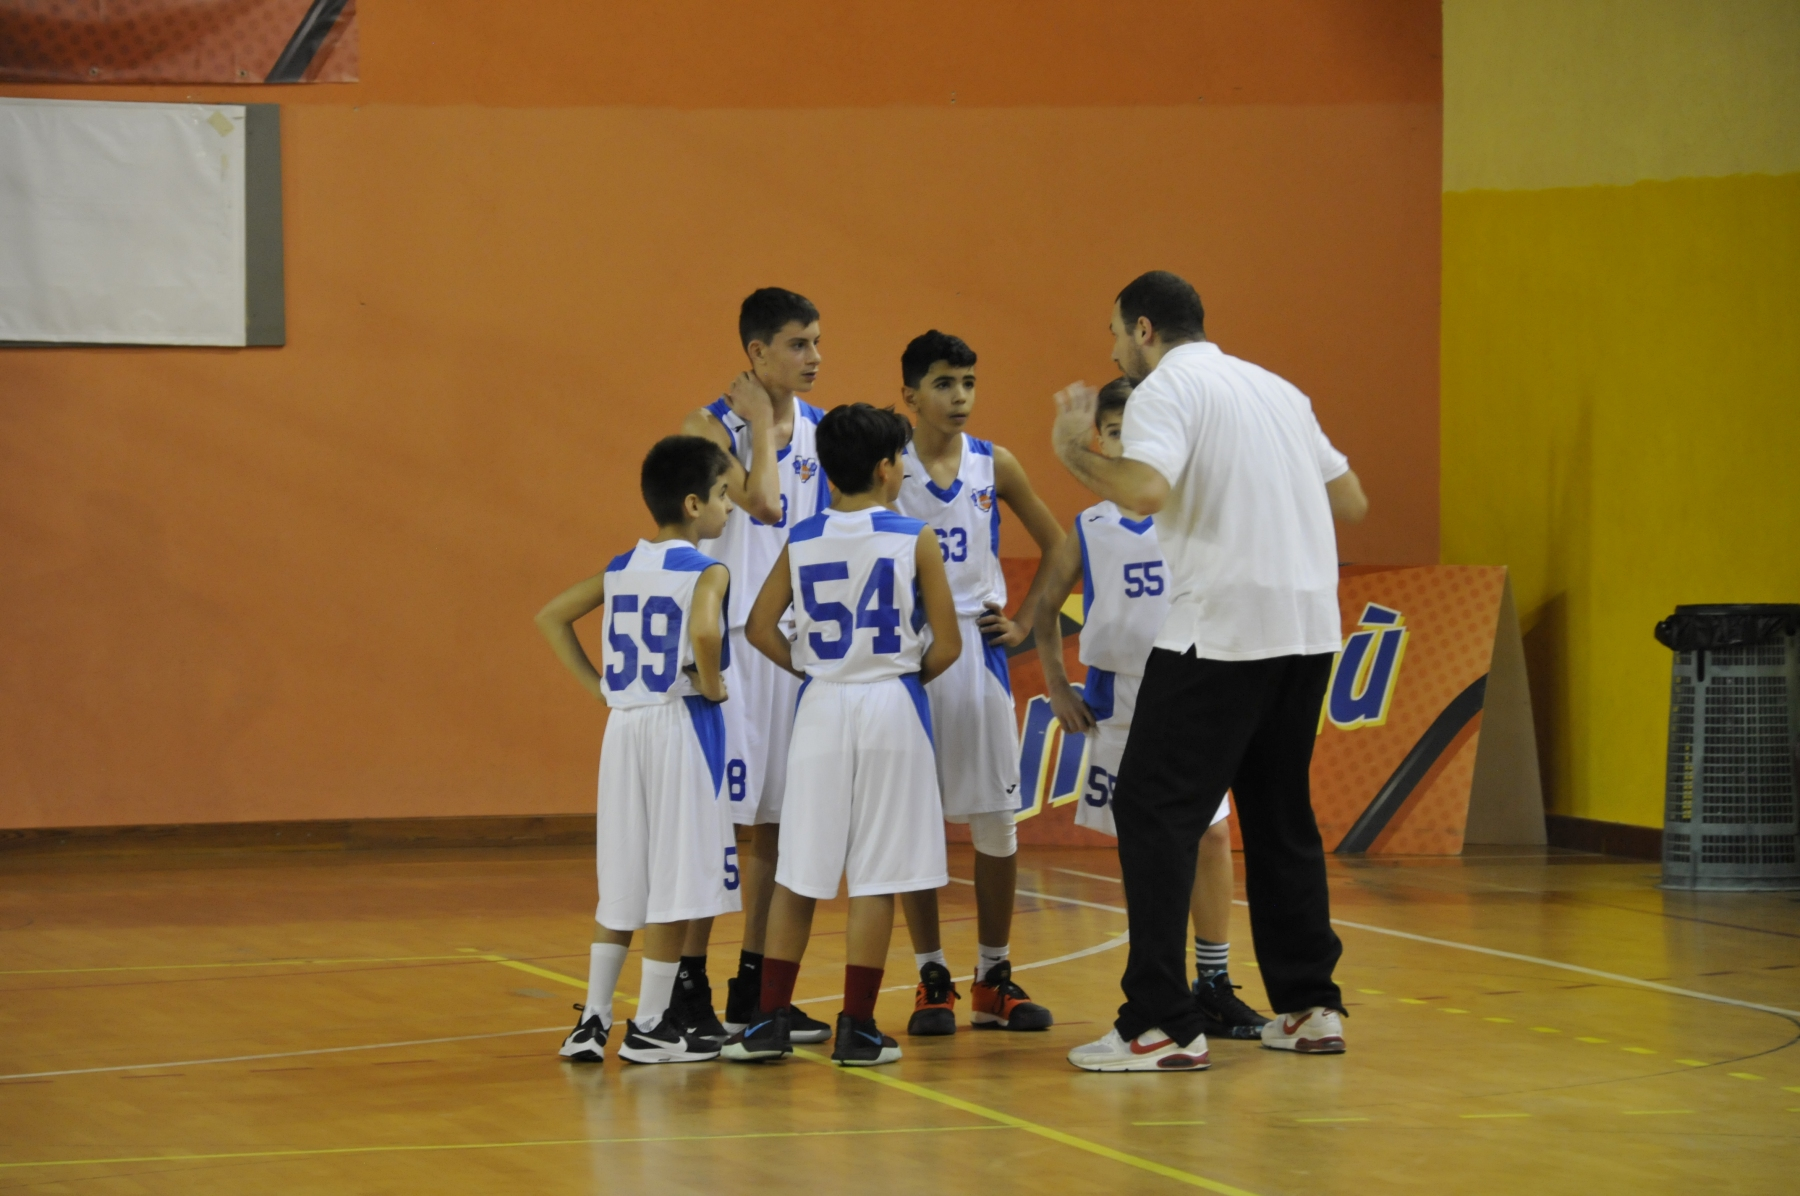 Junior-Casale-Virtus-U13-2019-12-01_029